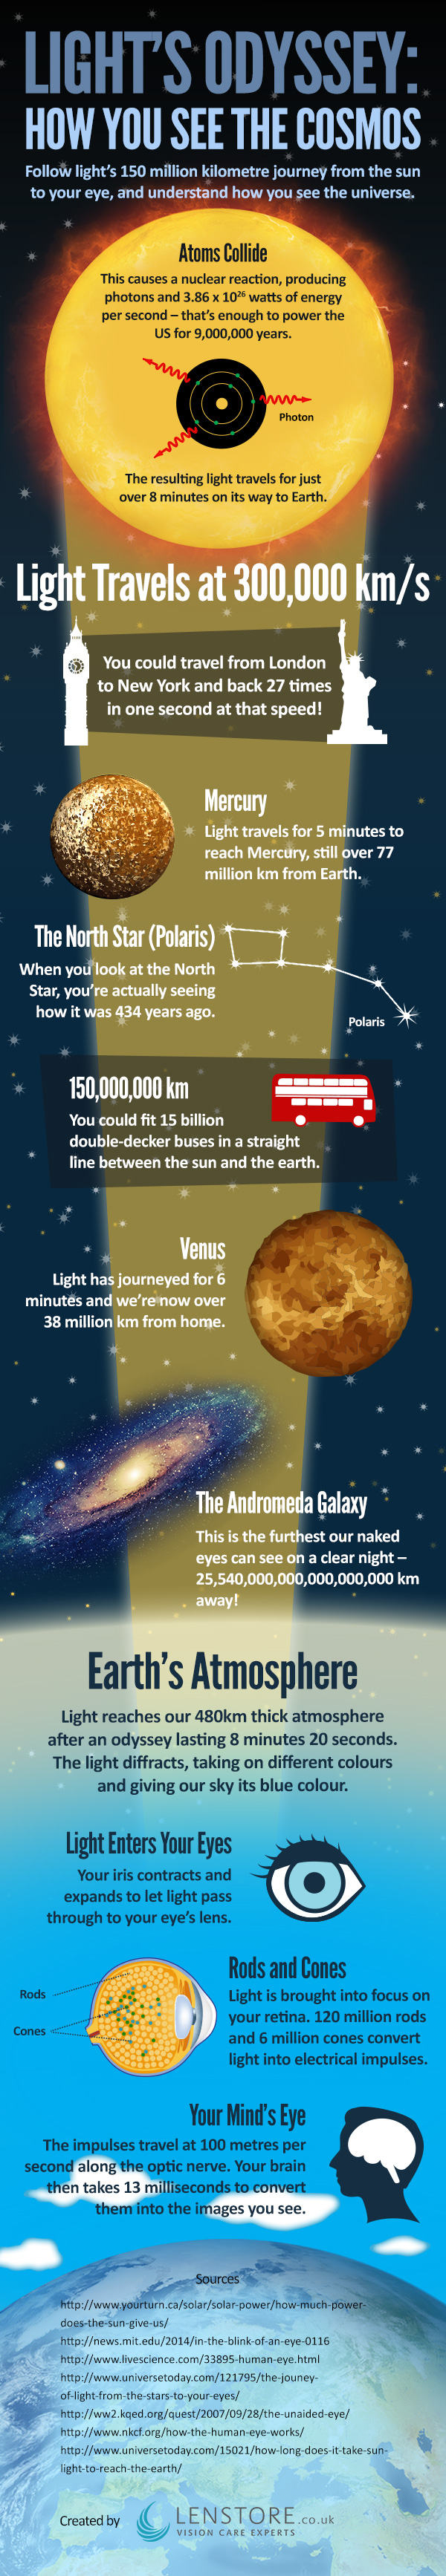 Light S Odyssey How You See The Cosmos Infographic Science